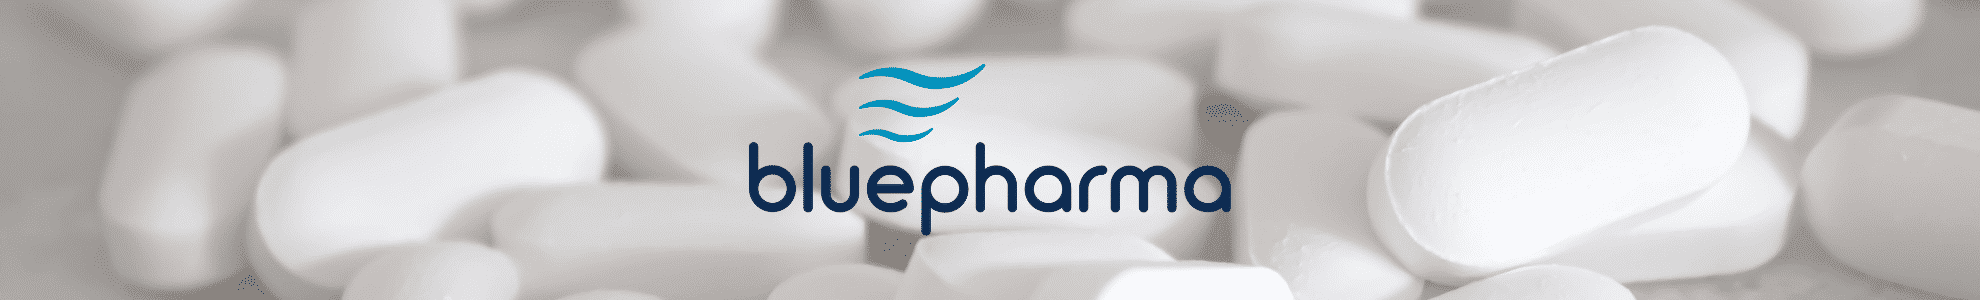 Bluepharma escolhe o software SISQUAL® WFM